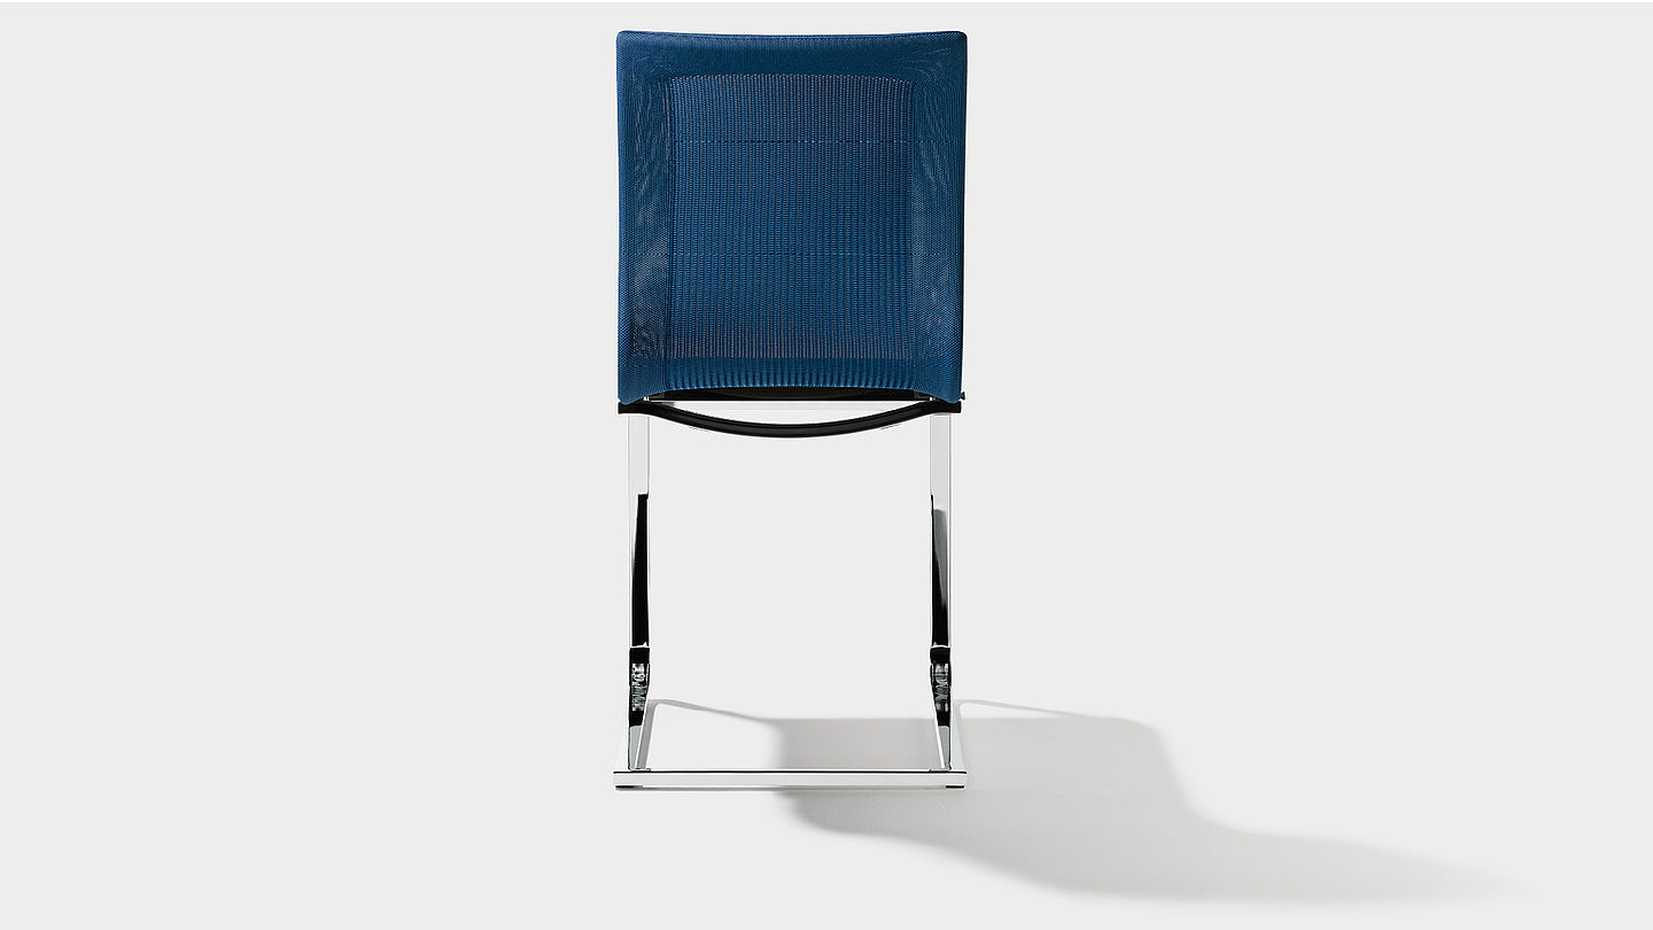 Magnum Stricktex Cantilever Chair by Team 7 product image 1